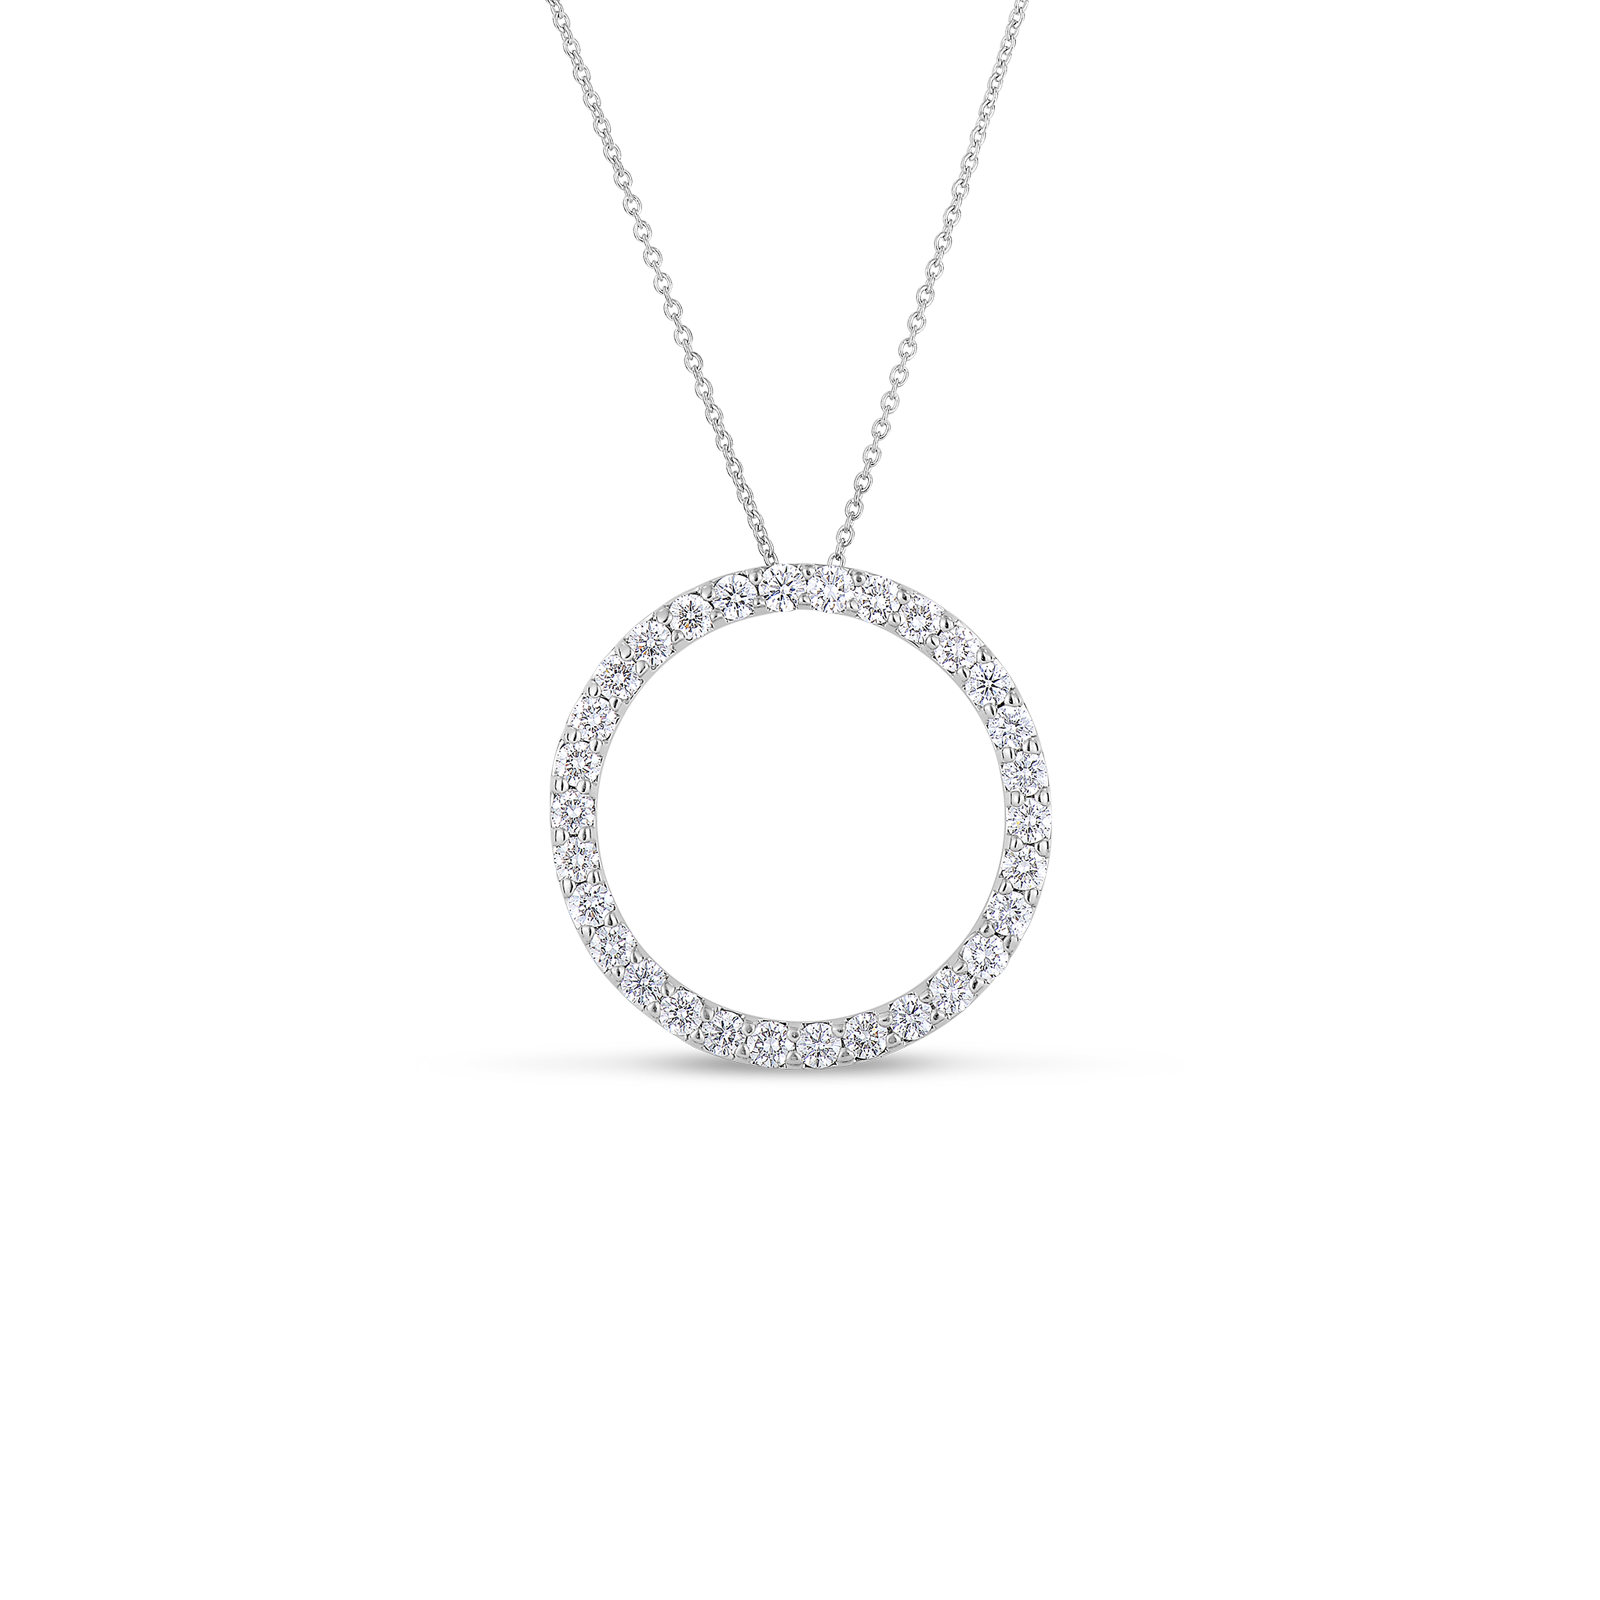 Diamond circle necklace sensational. Jewelry clipart jewelry display